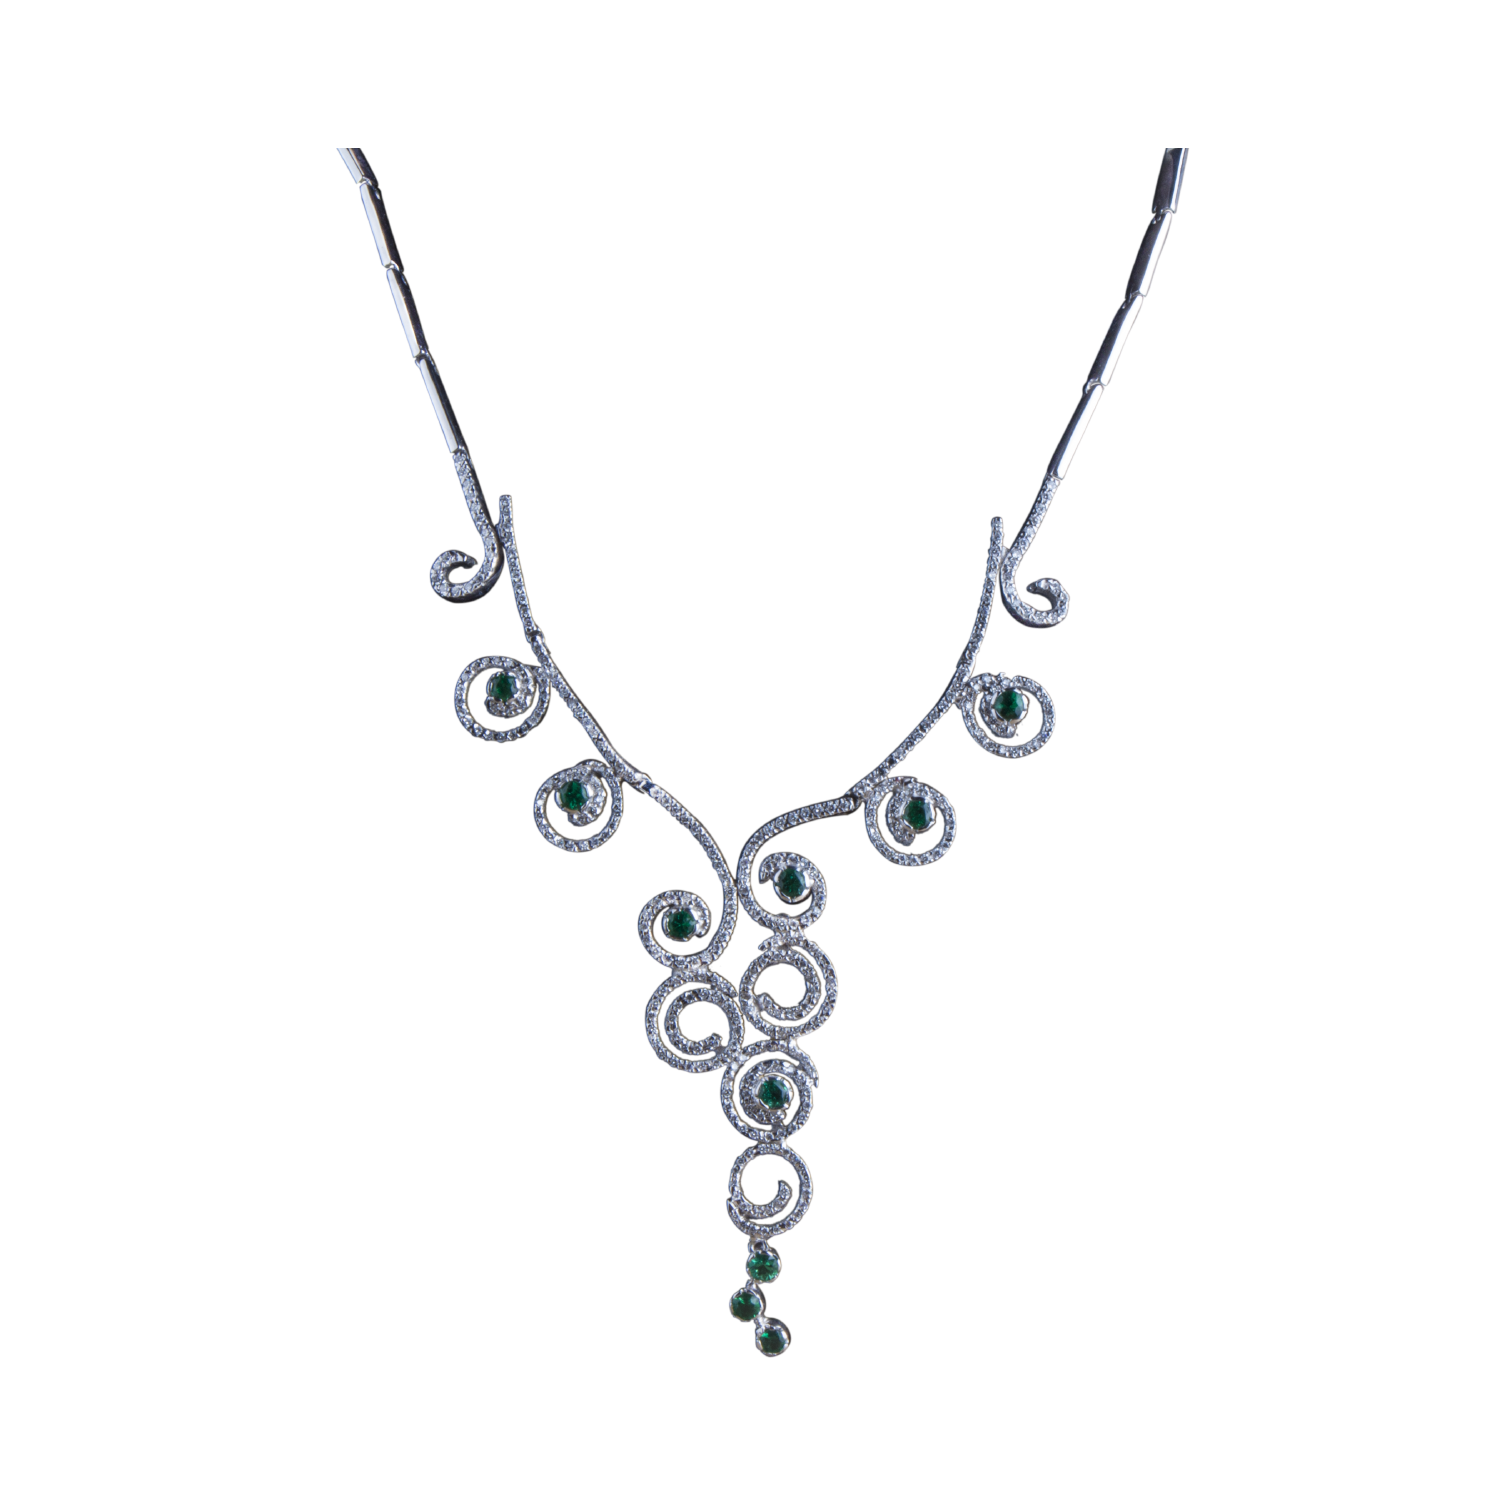 COLLIER 17022018-1